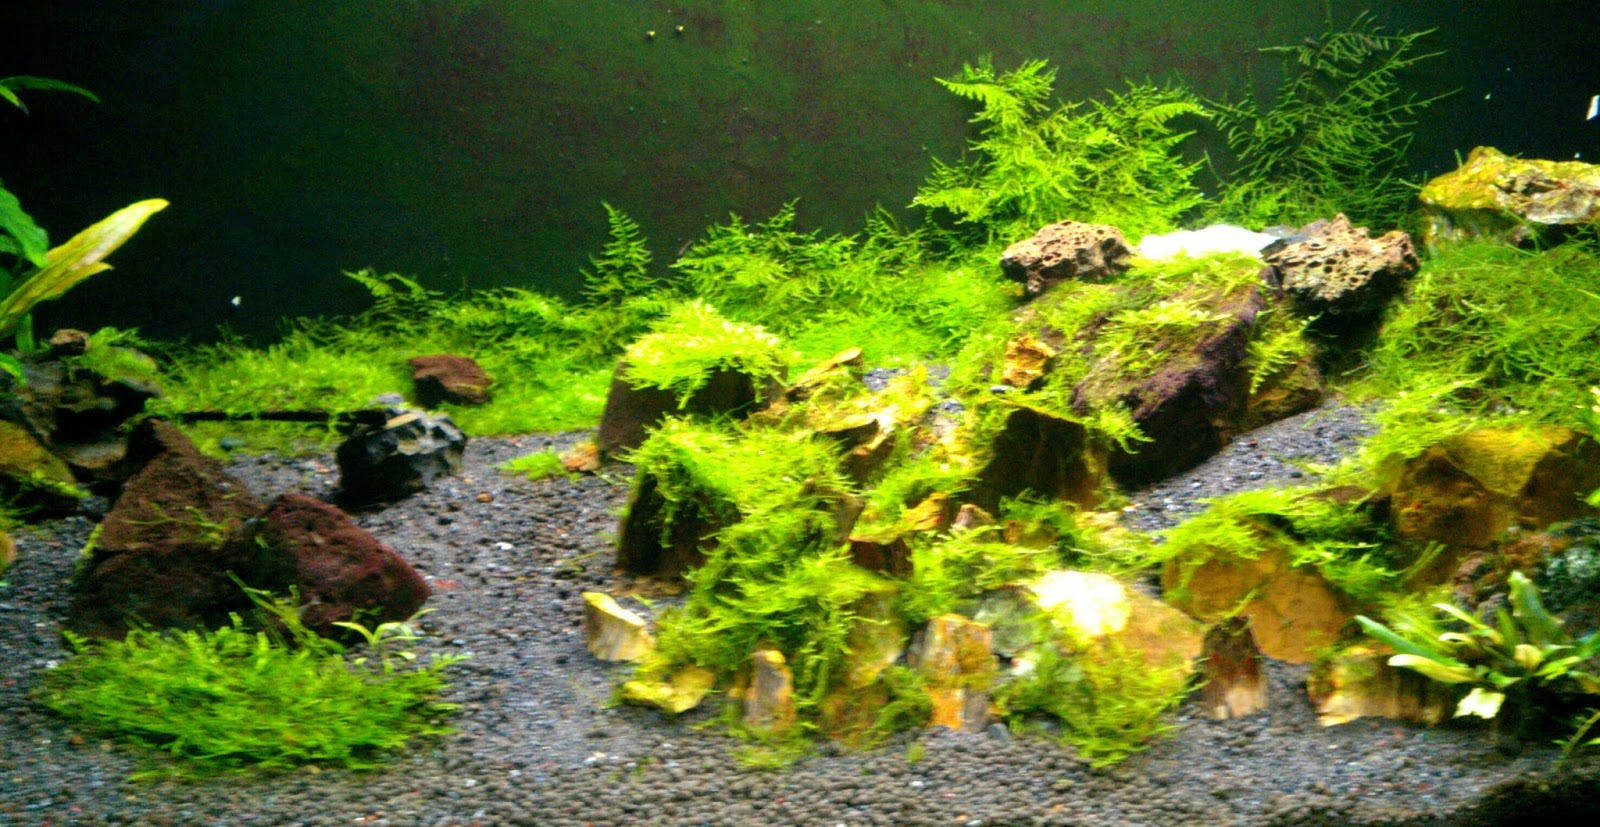 Greenleaf Splindid Aquascape Christmas N Mini Christmas Moss